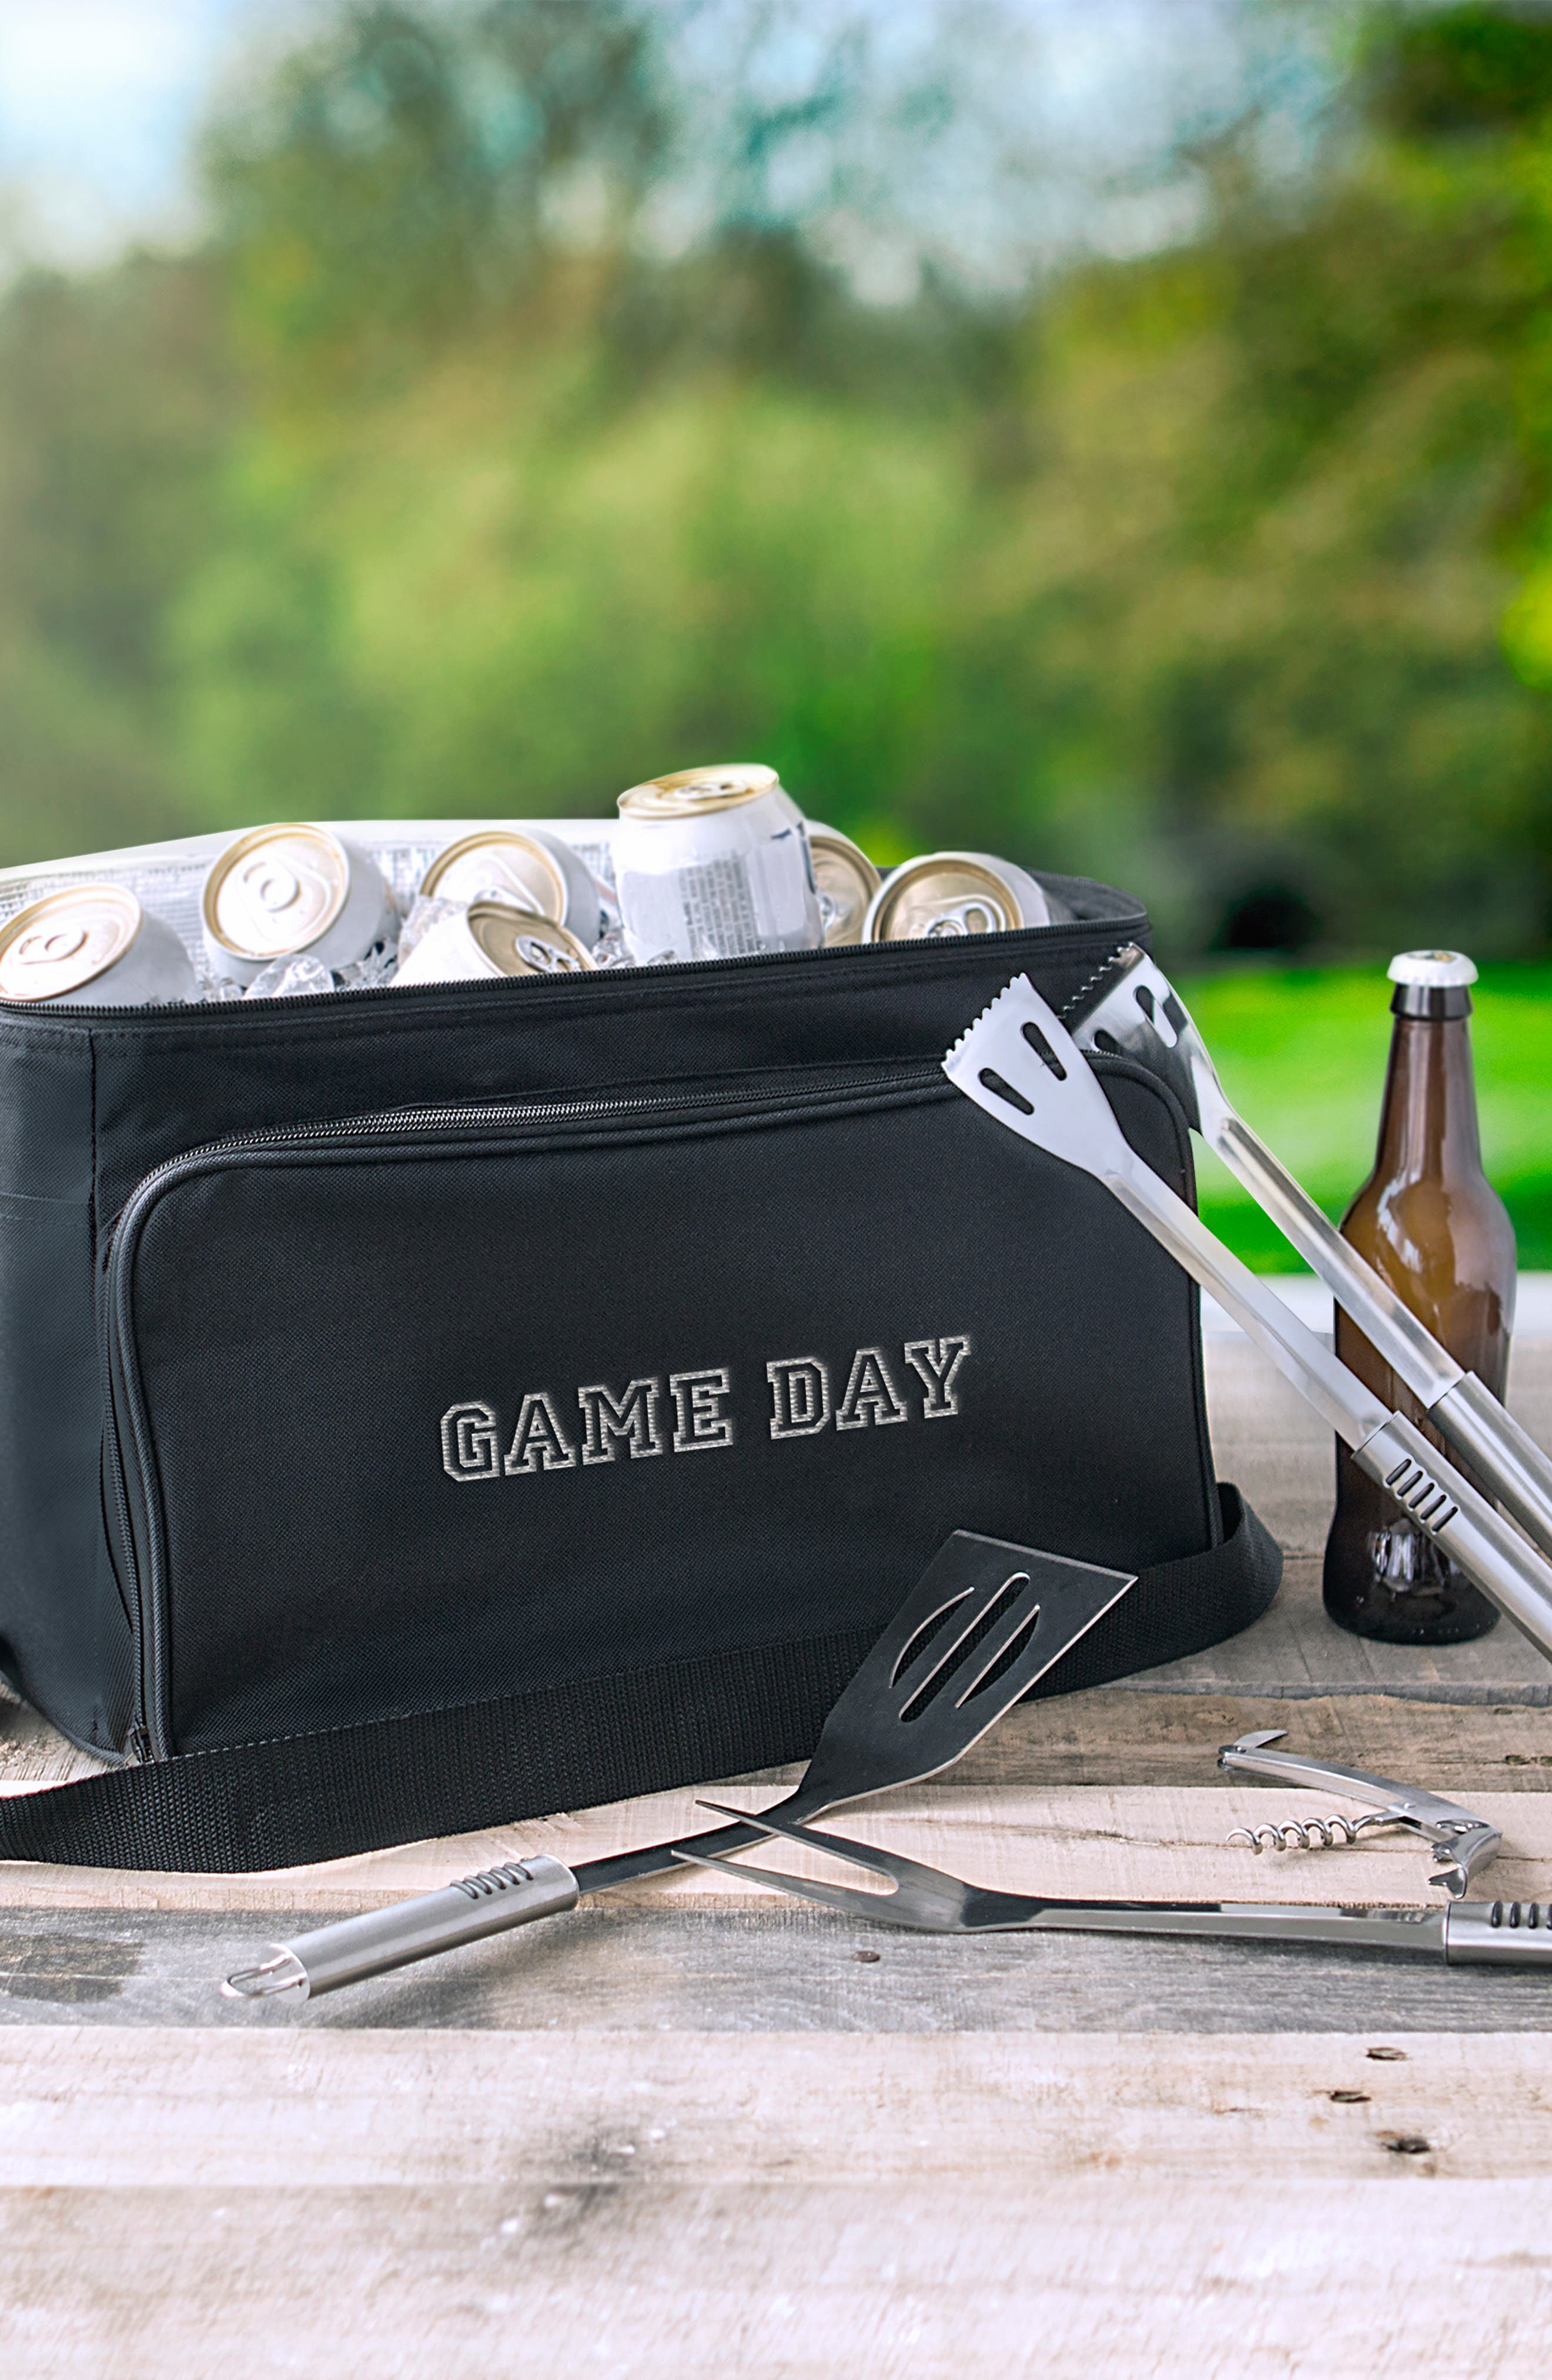 'Game Day' Cooler & BBQ Tool Set,                             Alternate thumbnail 2, color,                             001